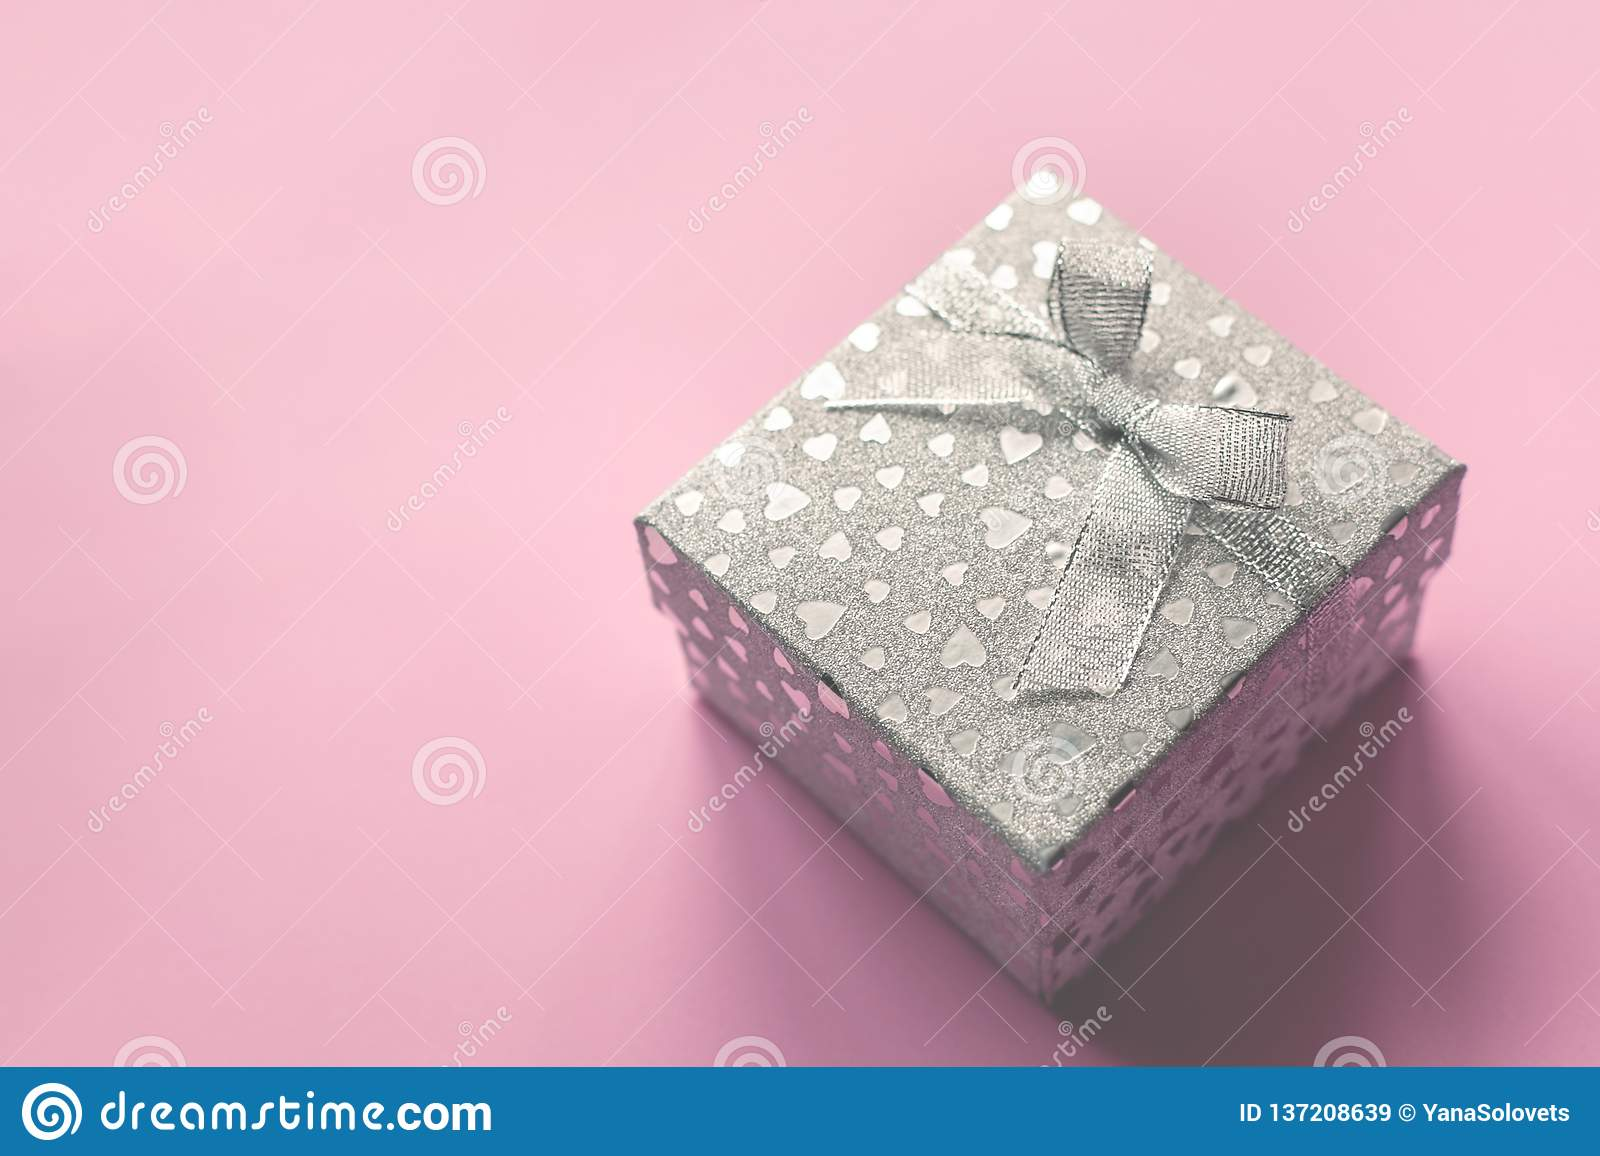 Silver gift box on a gentle pink background. Beautiful background for all holidays